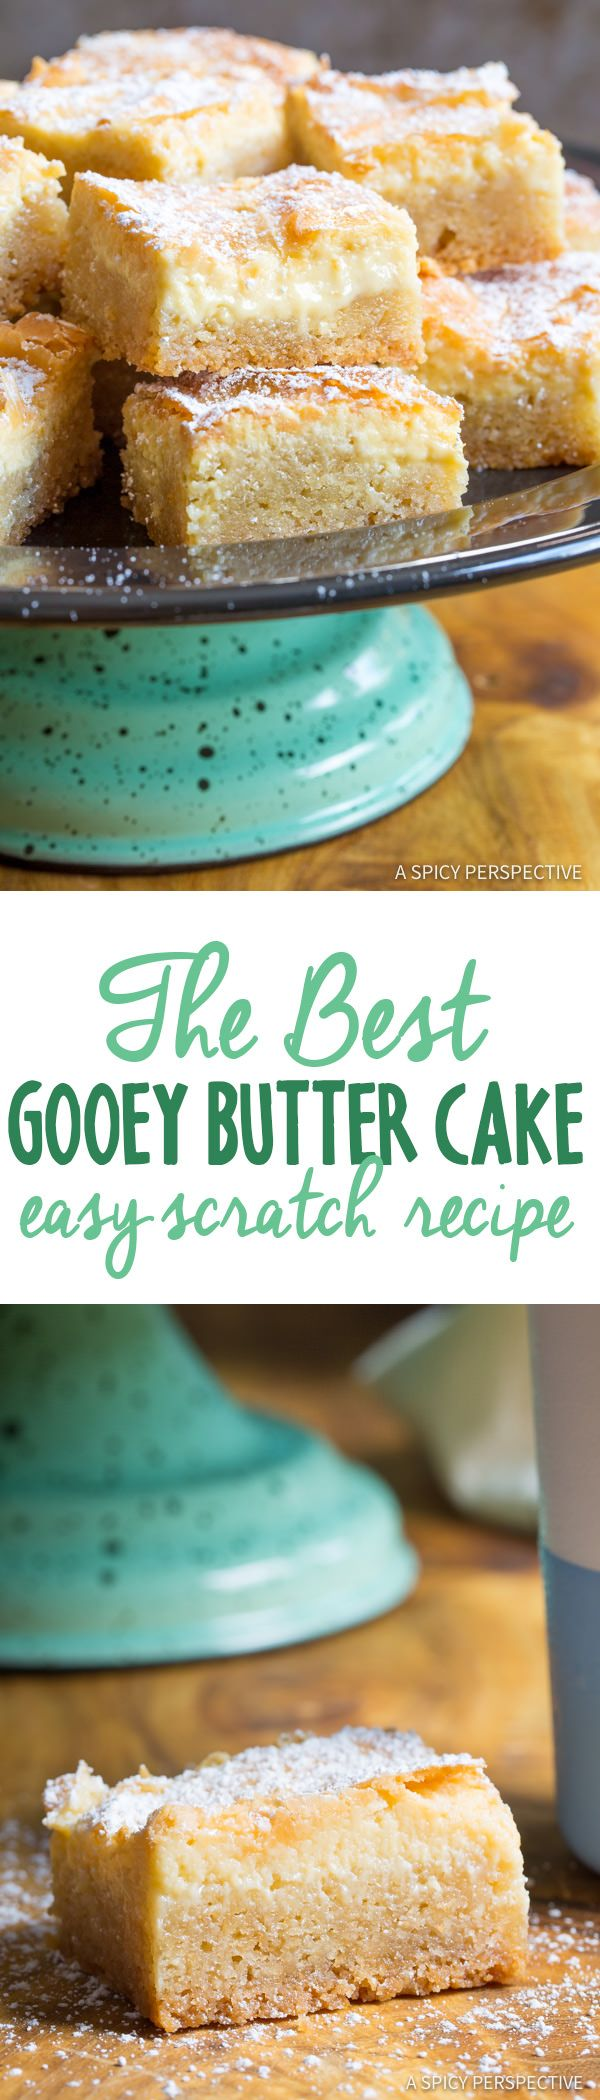 The Best Gooey Butter Cake Recipe (Similar to Chess Squares and Philadelphia Style Cake) #holidays #christmas